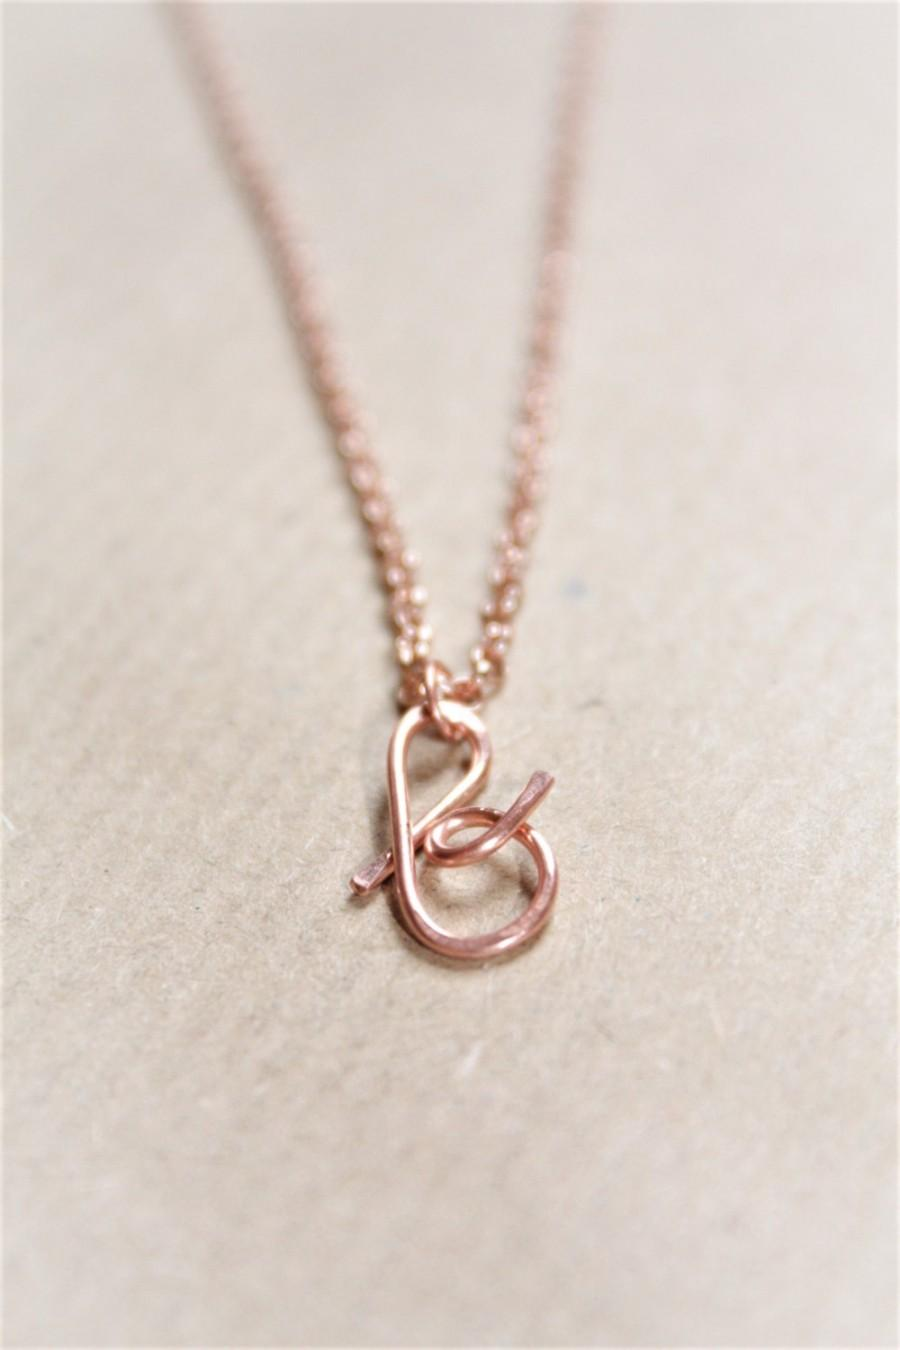 Wedding - Letter B Necklace, Rose Gold Initial Necklace, Cursive Letter Necklace, Lowercase Initial Necklace, Personalized Necklace, Di & De